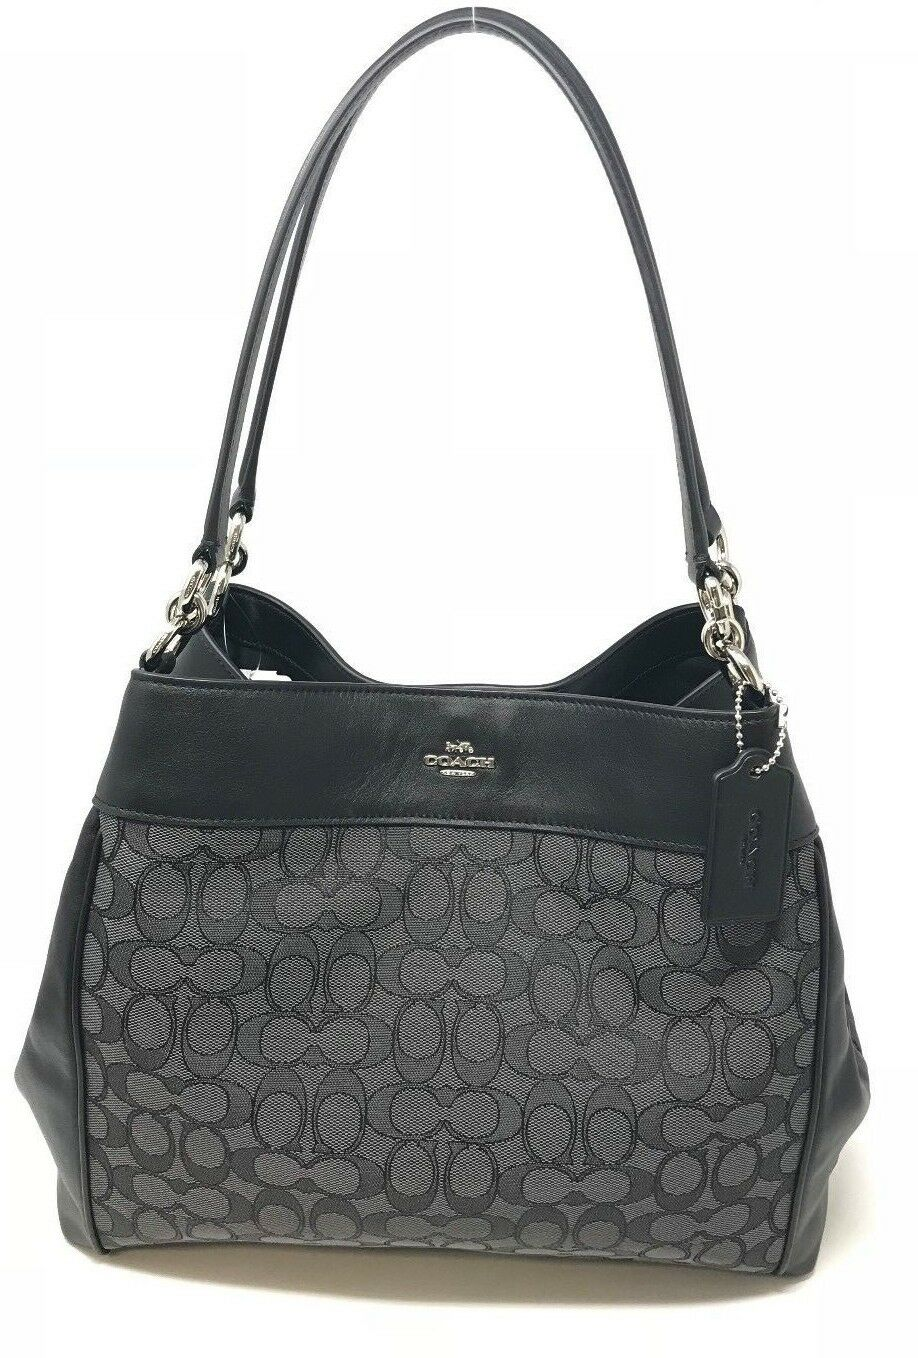 Coach Lexy Shoulder bag in Signature or Legacy Jacquard $375 (Choose Style)